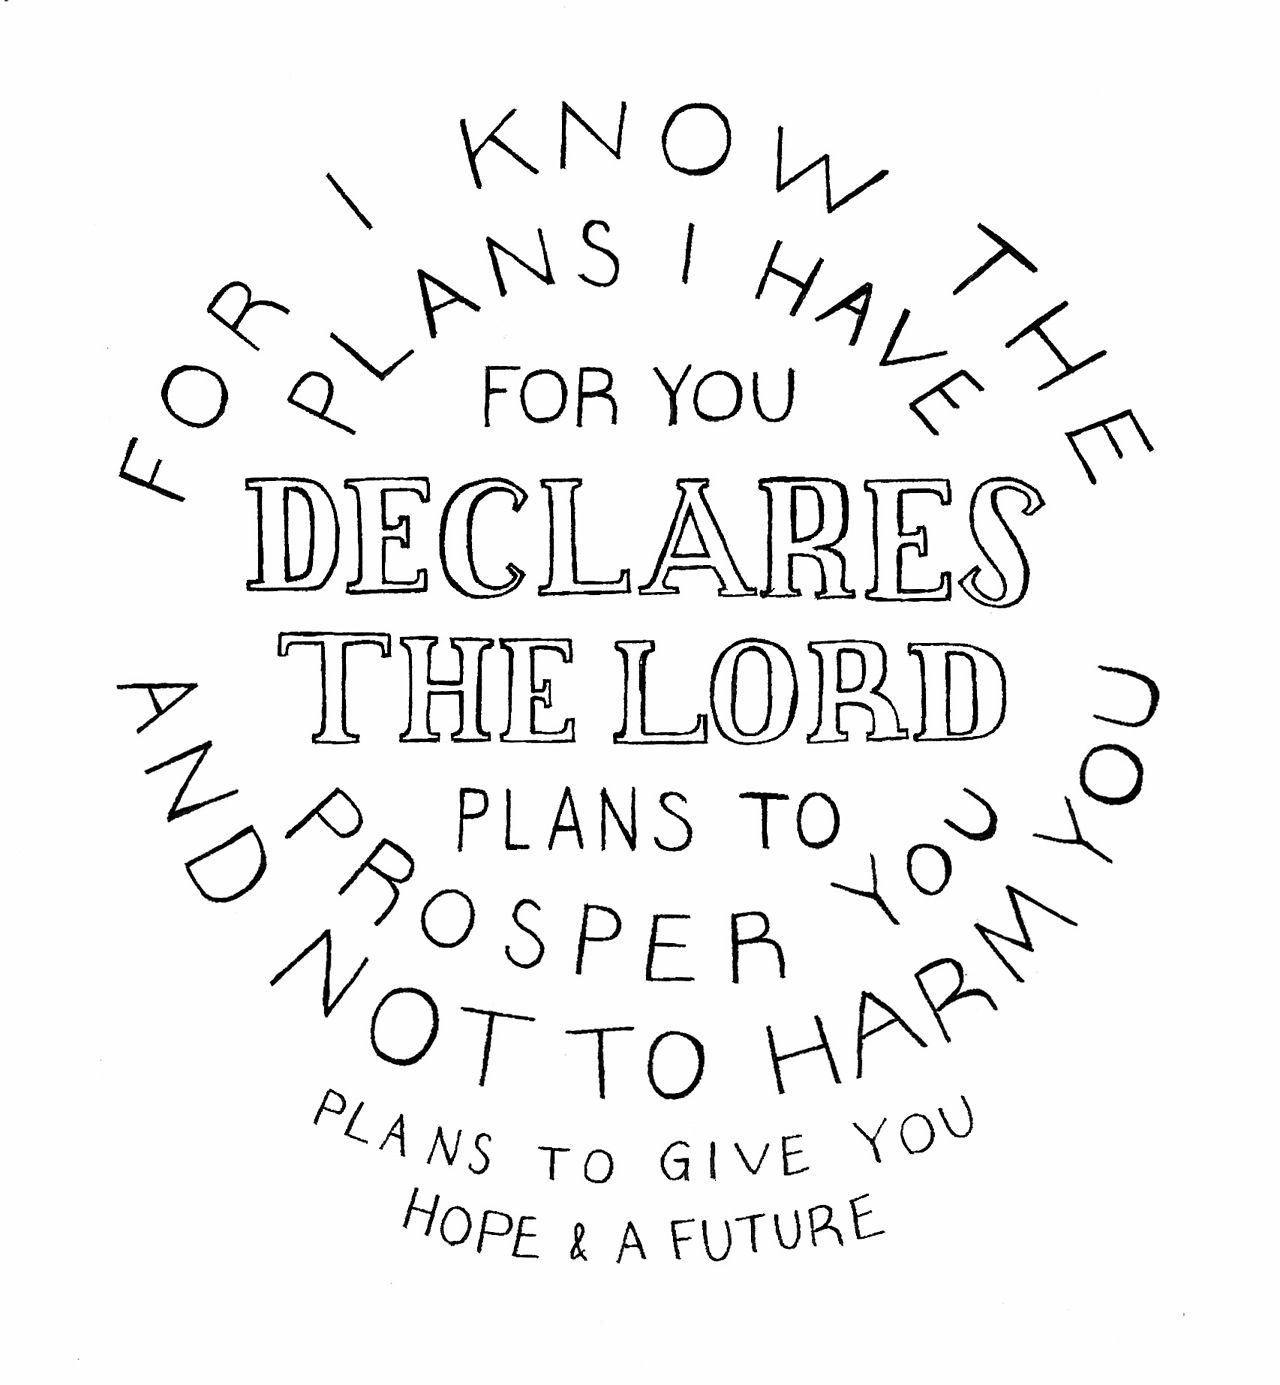 For I know the plans I have for you, declares the Lord, plans for welfare and not for evil, to